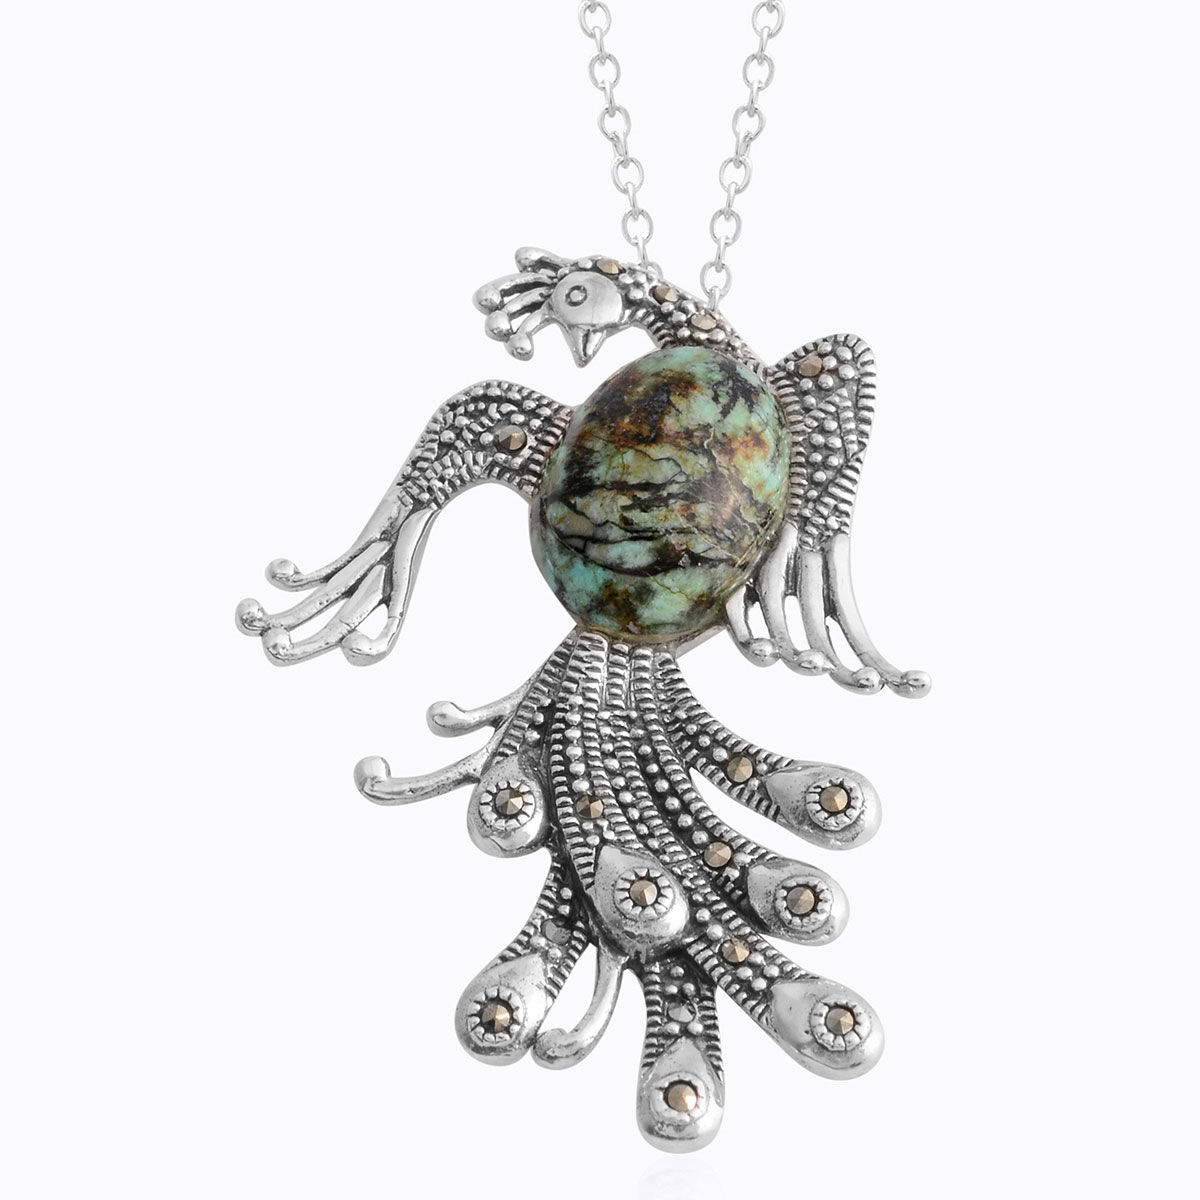 1bb2dd9f5a7d8 Howlite, Swiss Marcasite Sterling Silver Peacock Pendant With Stainless  Steel Chain TGW 5.28 cts.